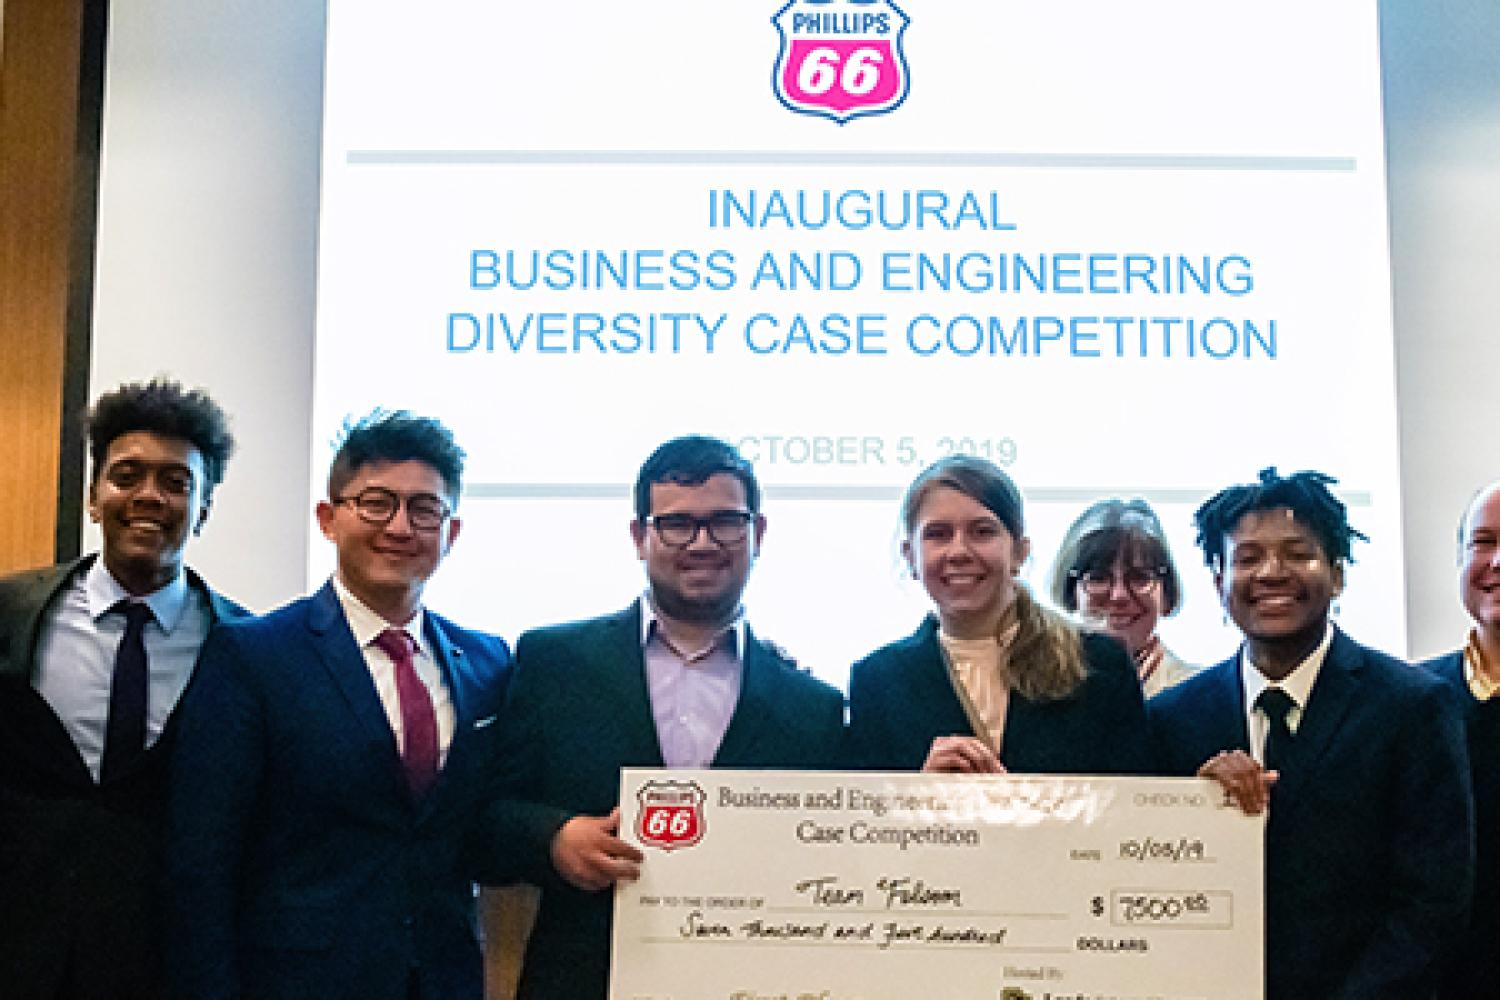 P66 Case Competition